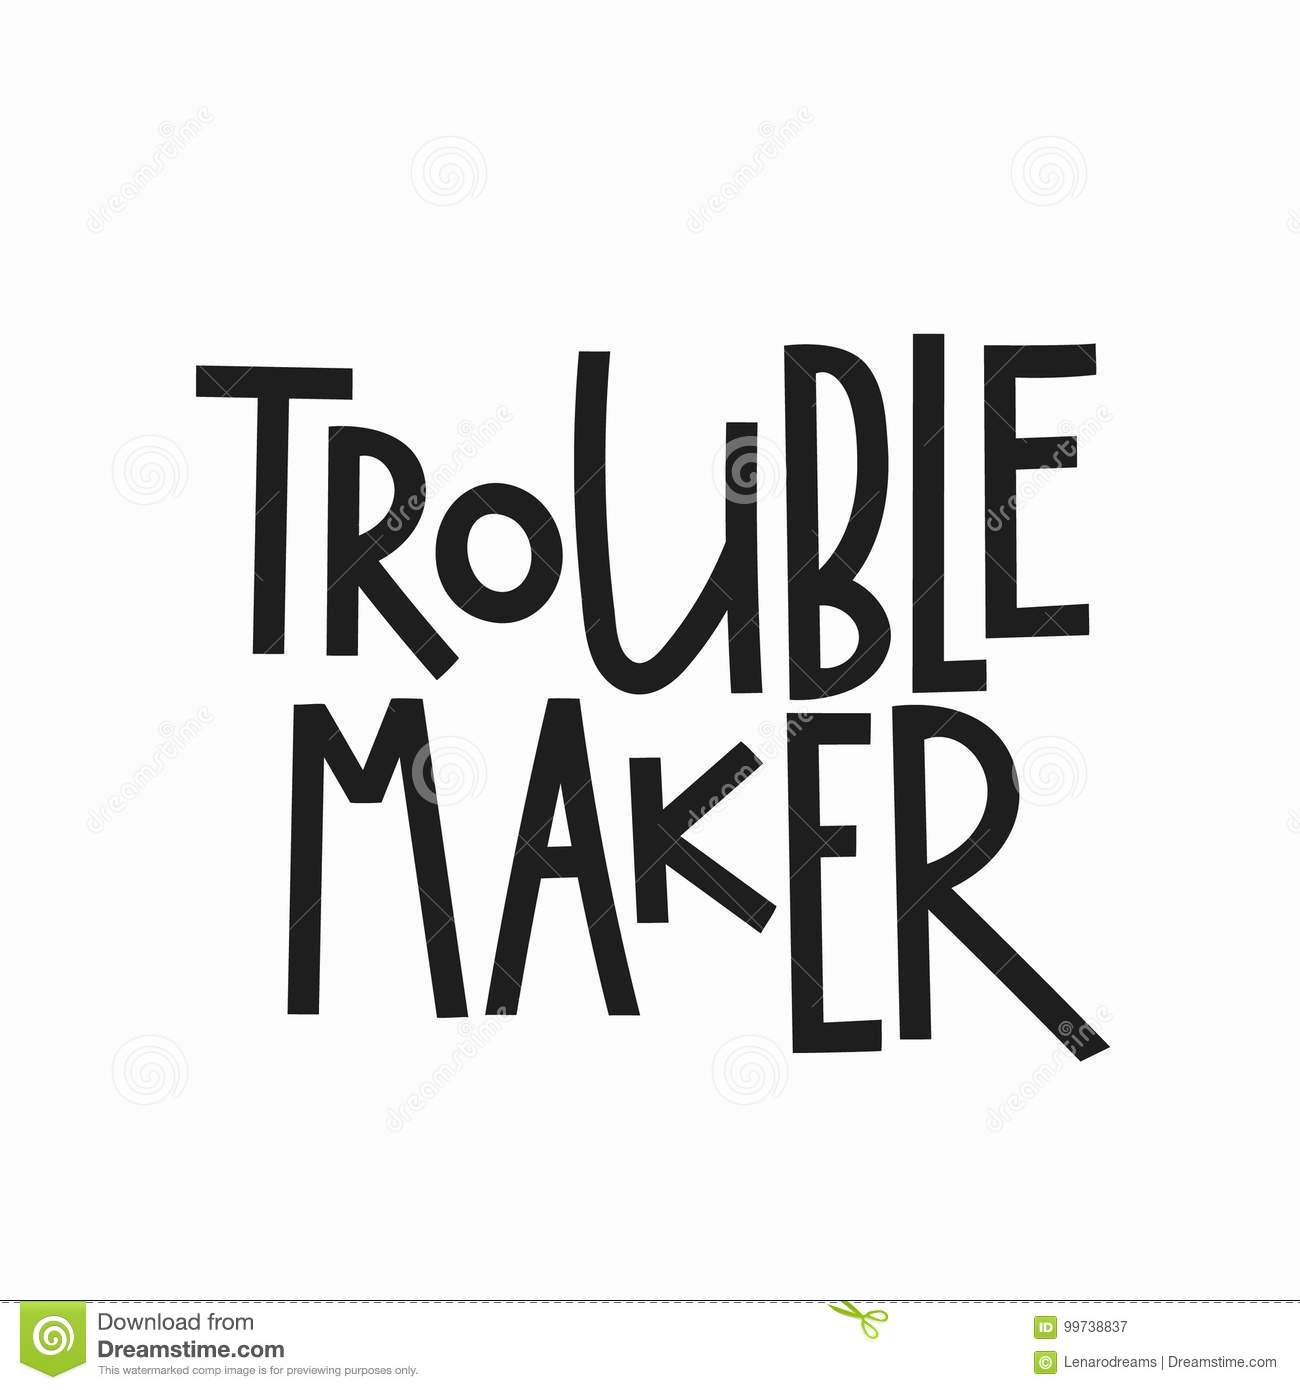 Image of: Aesthetic Trouble Maker Tshirt Quote Lettering Calligraphy Inspiration Graphic Design Typography Element Hand Written Postcard Cute Simple Sign Appsftw Lettering Typography Calligraphy Overlay Stock Illustration